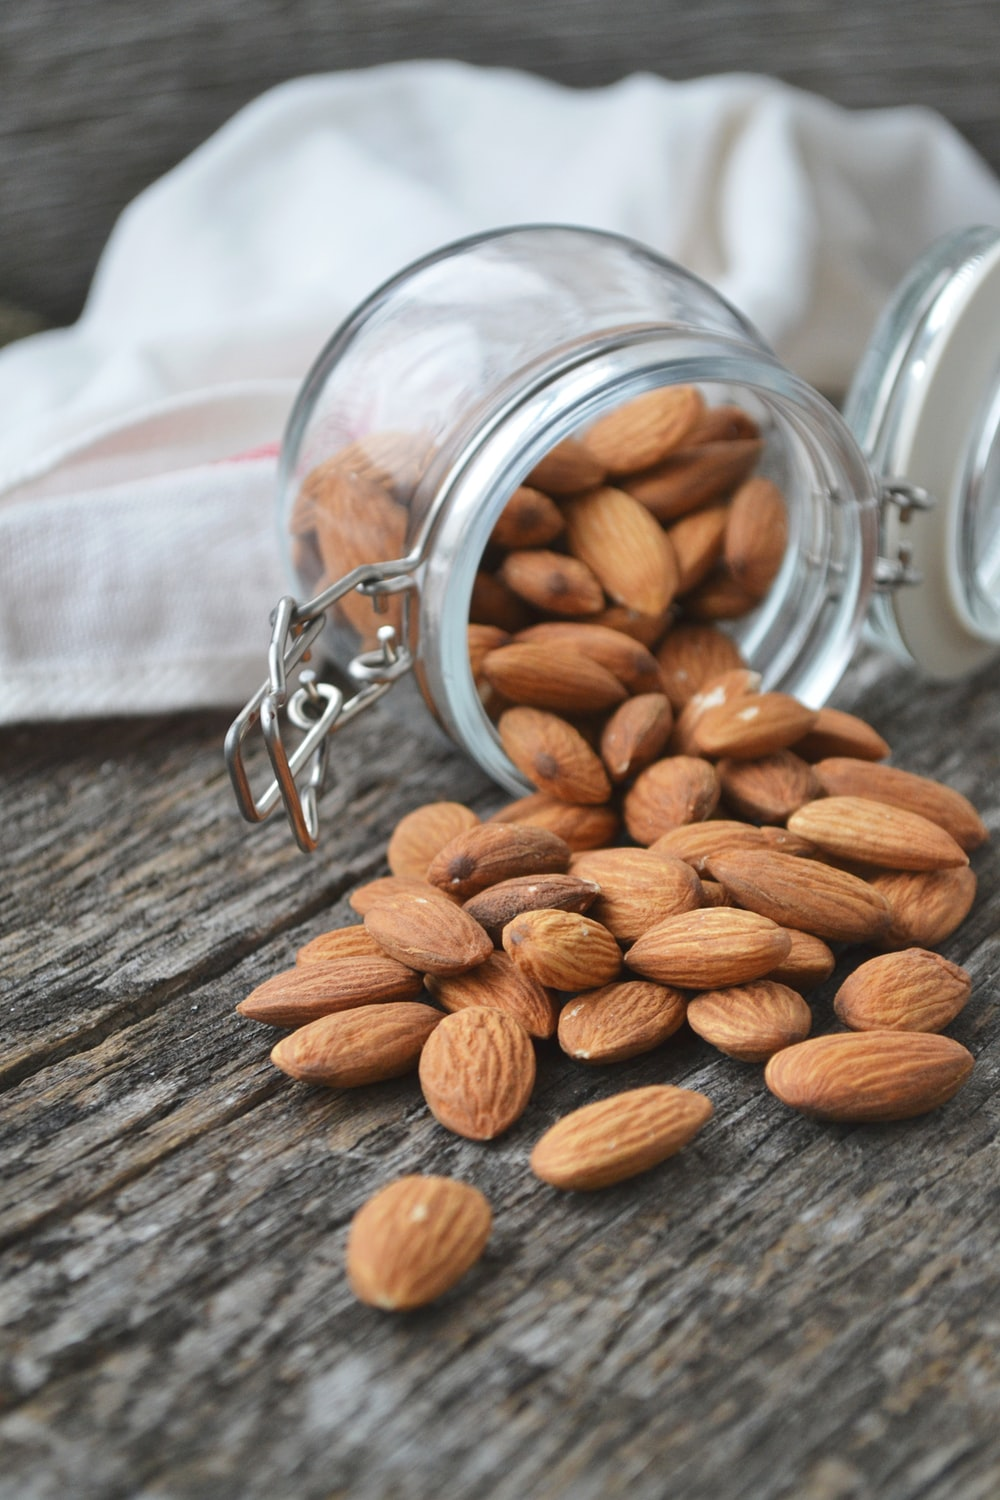 Almond Nutritional Benefits